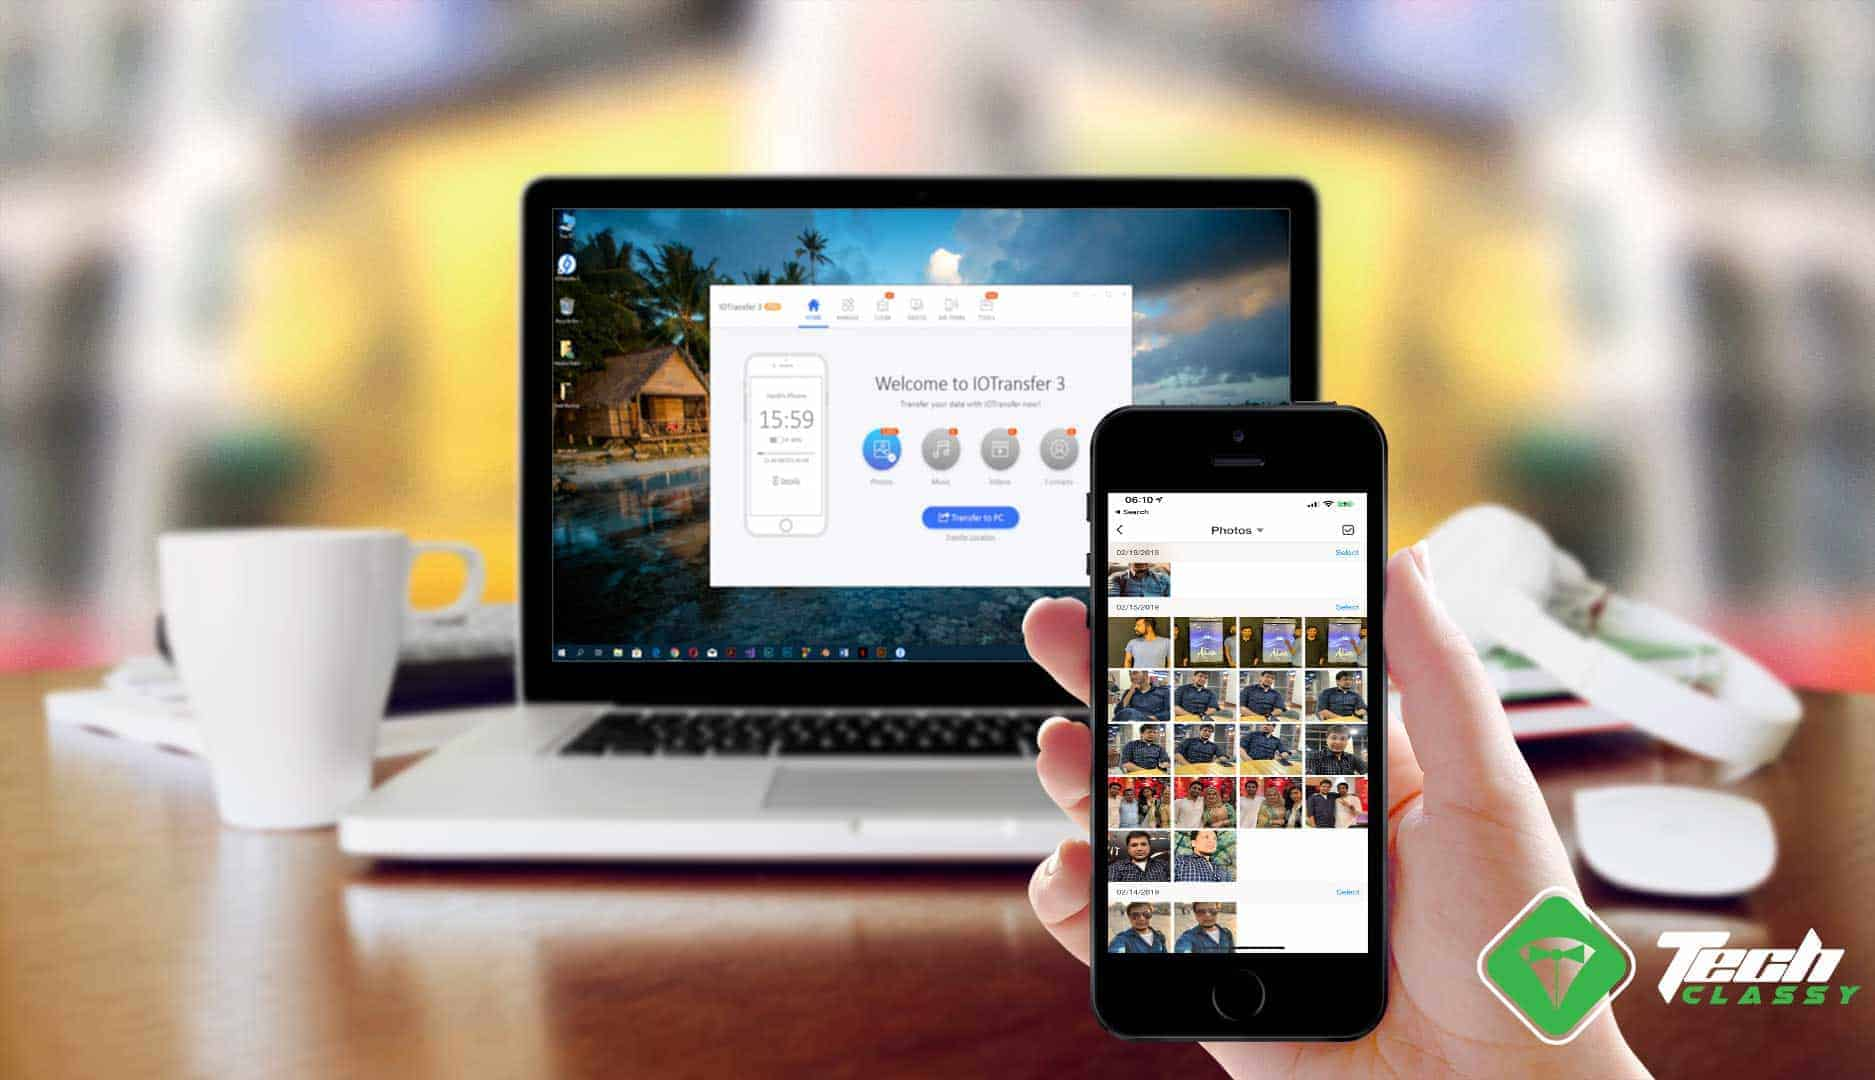 Transfer Photos and Videos from iPhone to Windows 10 PC